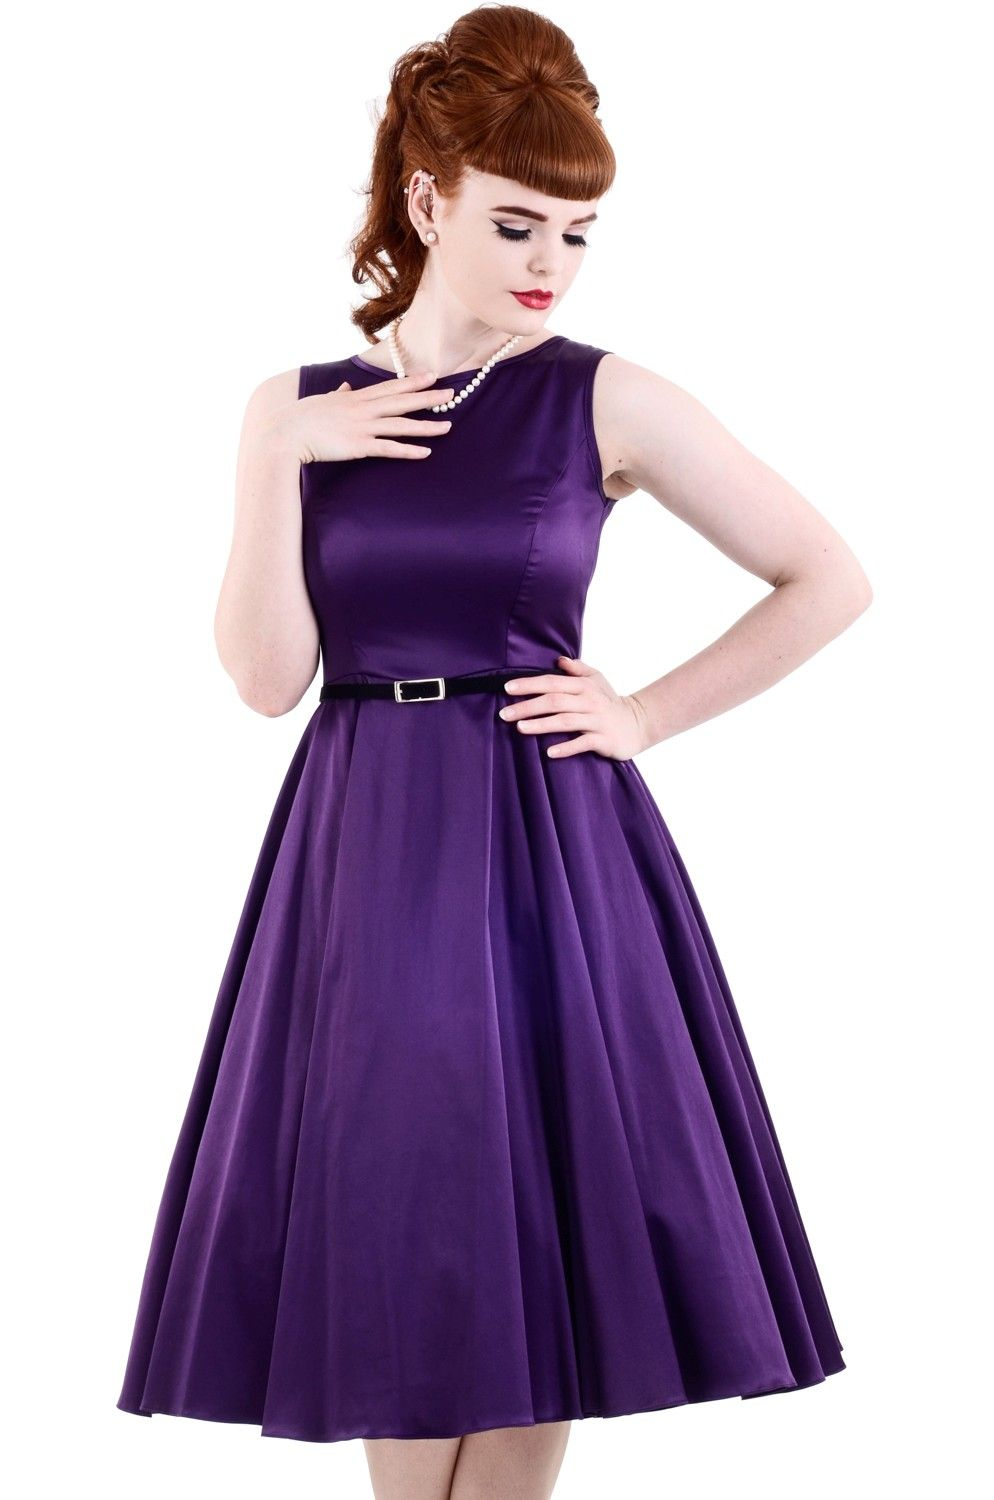 The Purple Hepburn Dress - £45. Made in London. | Fashion ...